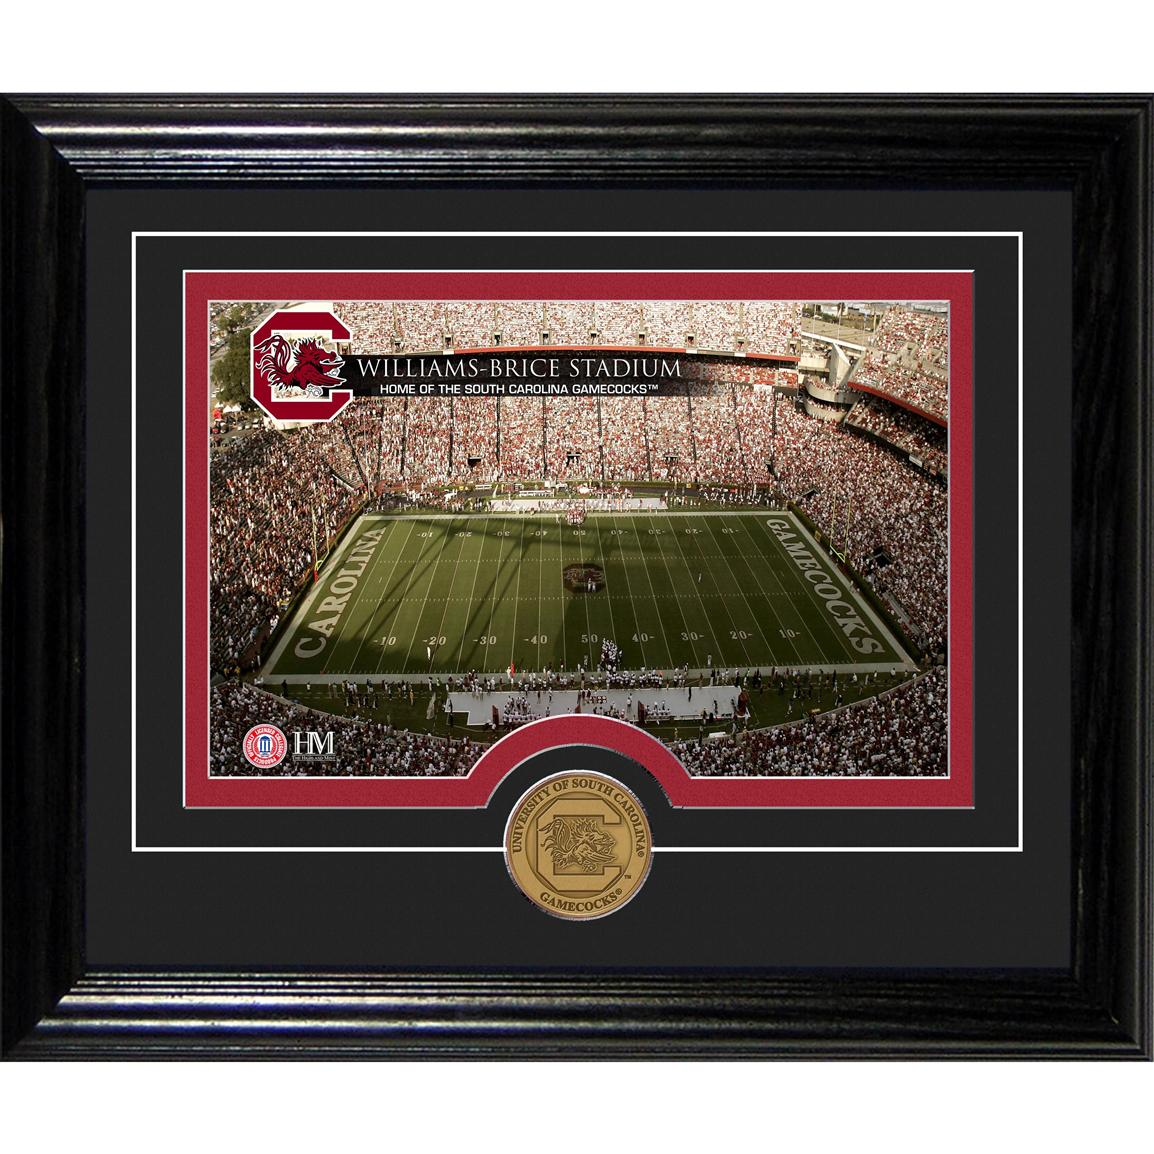 Highland Mint® University of South Carolina Williams Brice Stadium Desktop Photo Mint